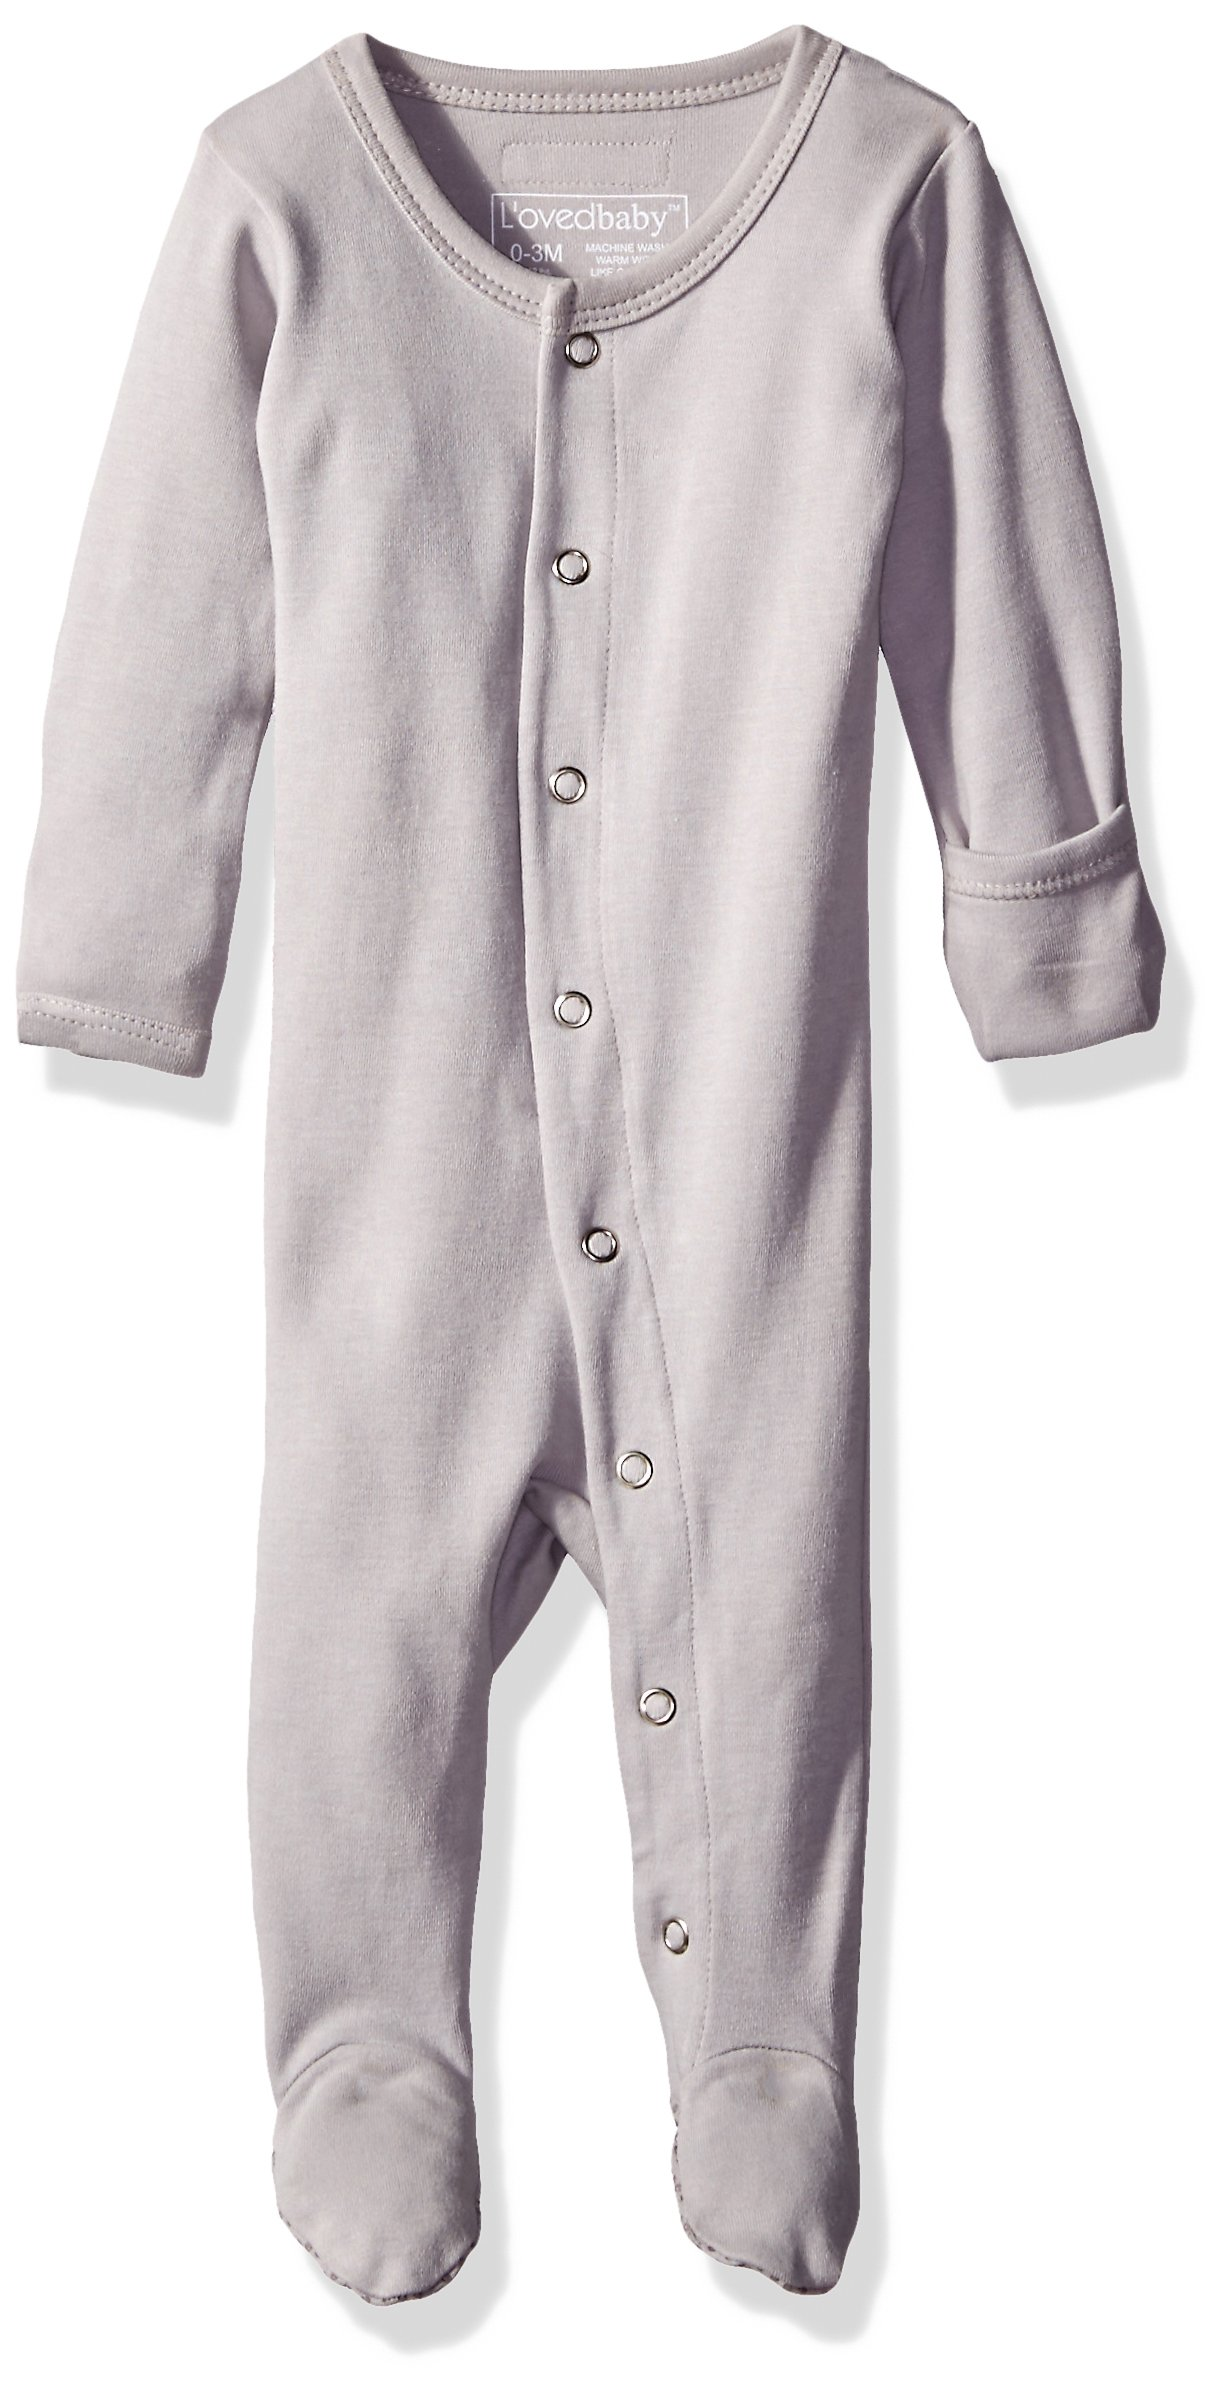 L'ovedbaby Organic Cotton Baby Footed Sleeper, Light Gray, 3-6 Months